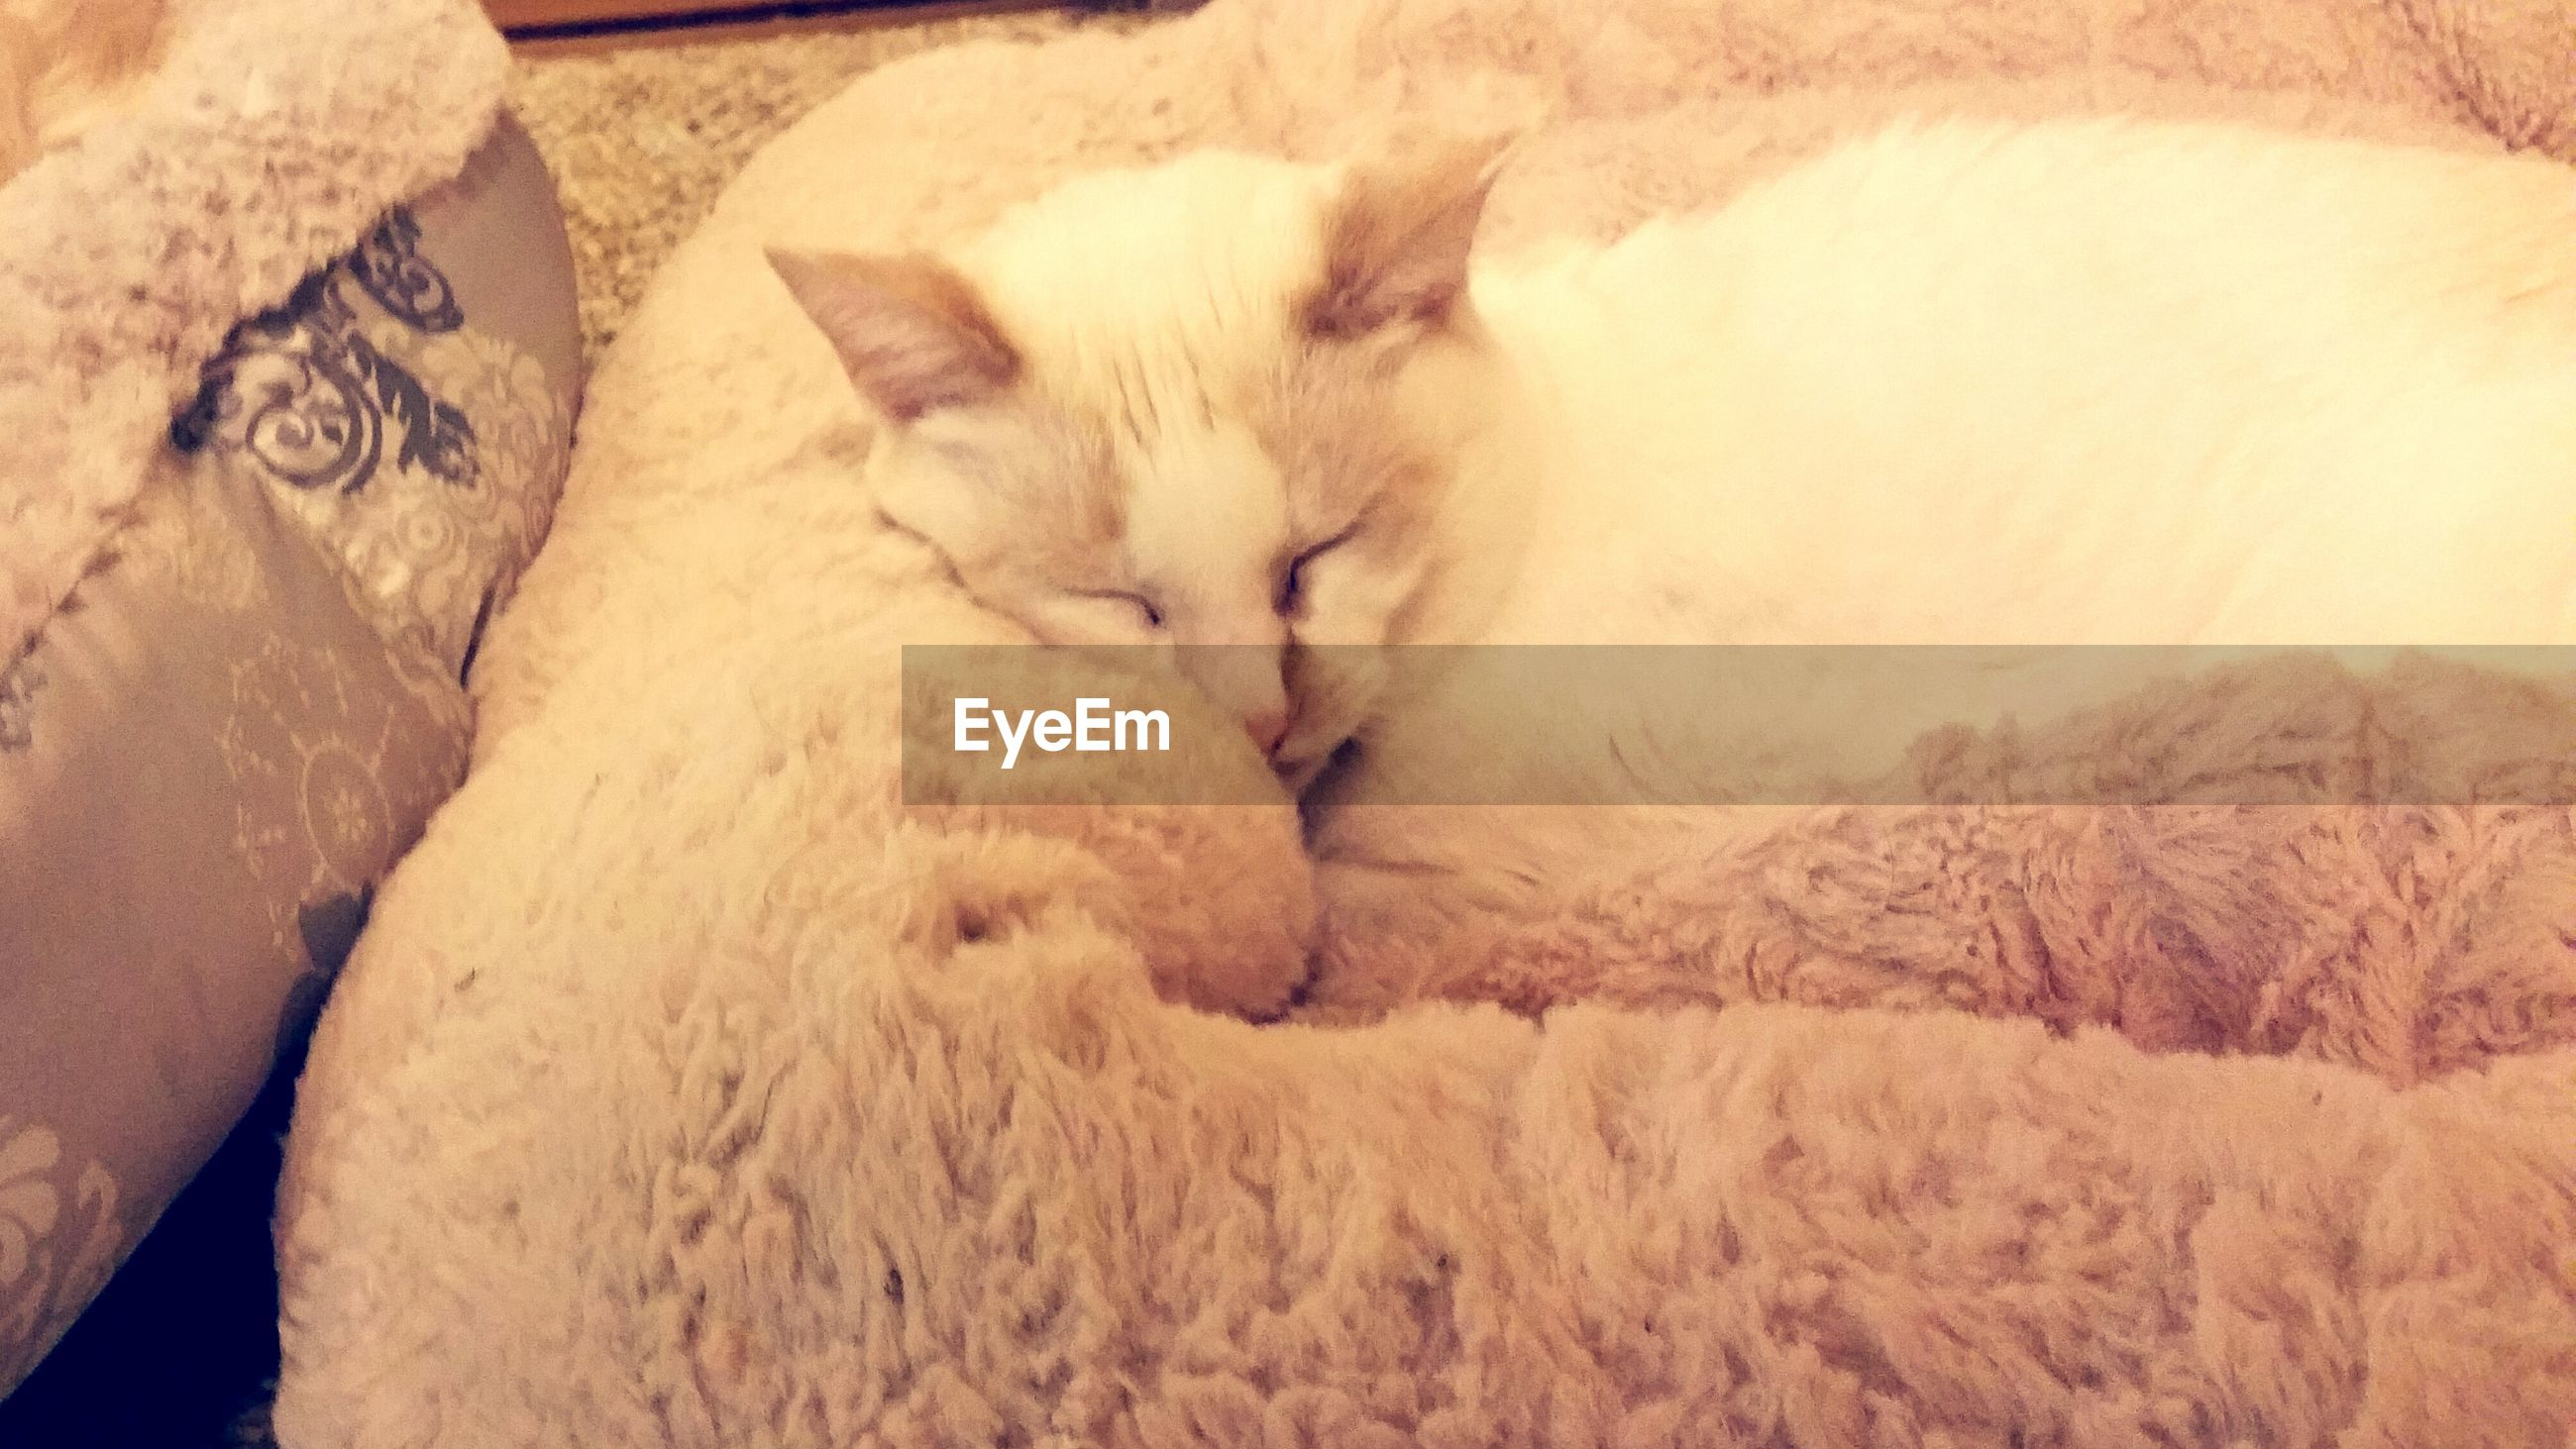 animal themes, mammal, domestic animals, indoors, one animal, relaxation, pets, sleeping, resting, lying down, high angle view, no people, domestic cat, feline, eyes closed, cat, zoology, bed, two animals, close-up